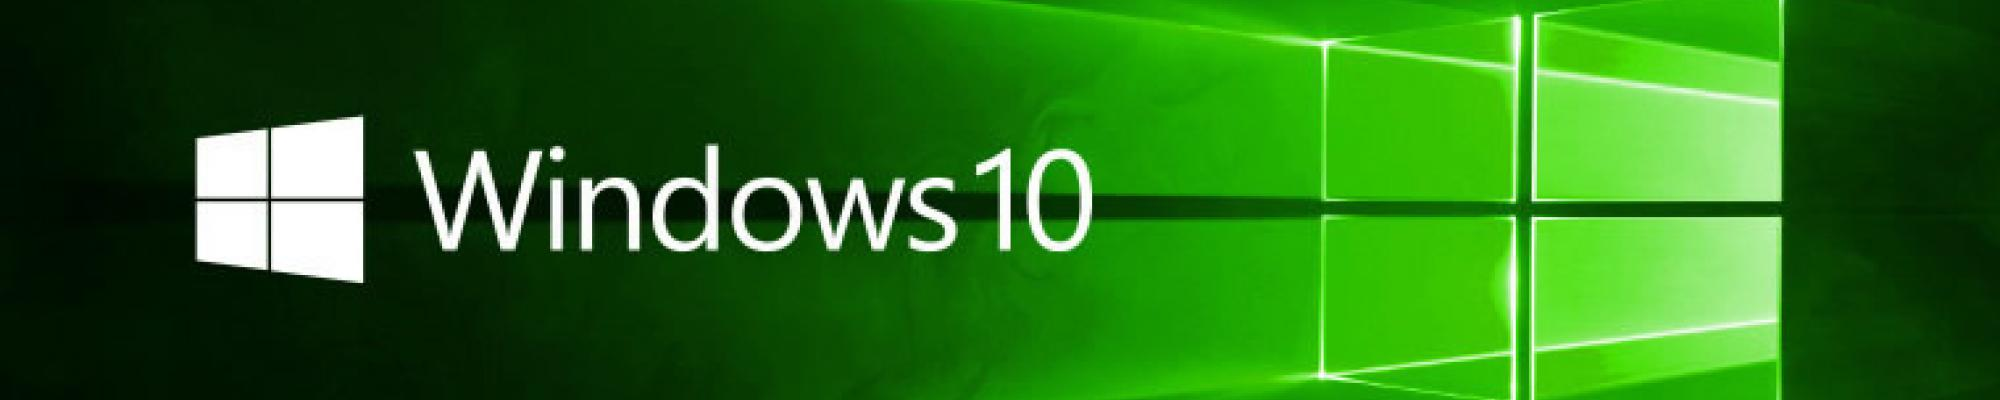 Windows 10: technology update